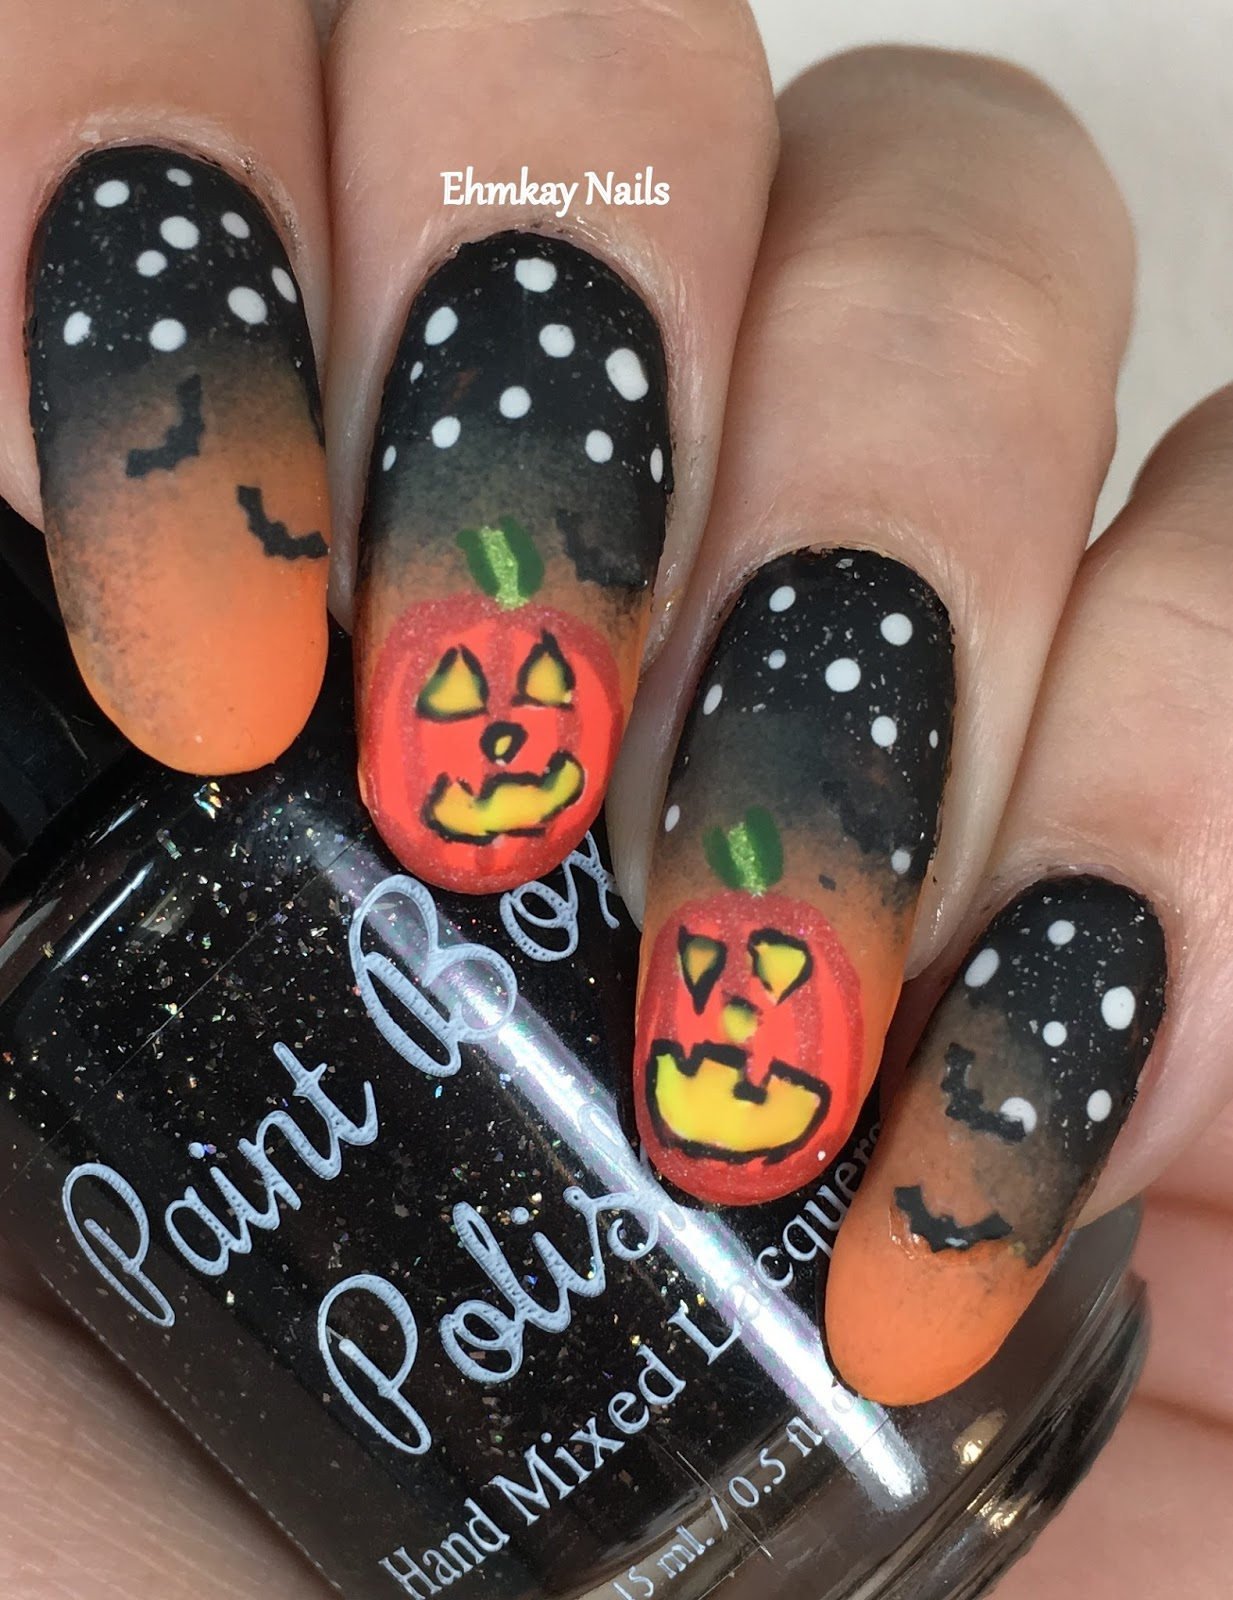 ehmkay nails: Halloween Nail Art: Glowing Pumpkin Nail Art ...